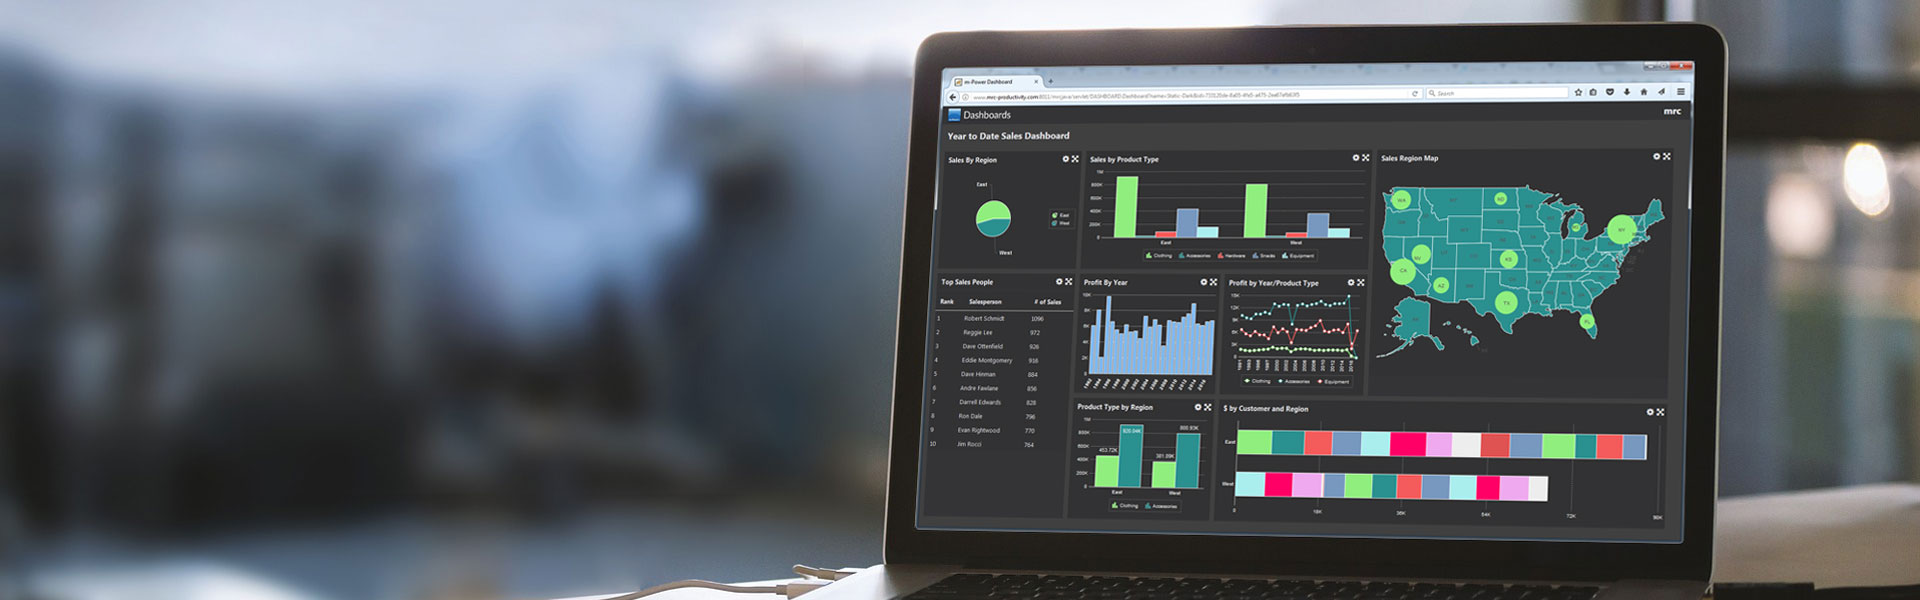 What to look for in an embedded analytics tool